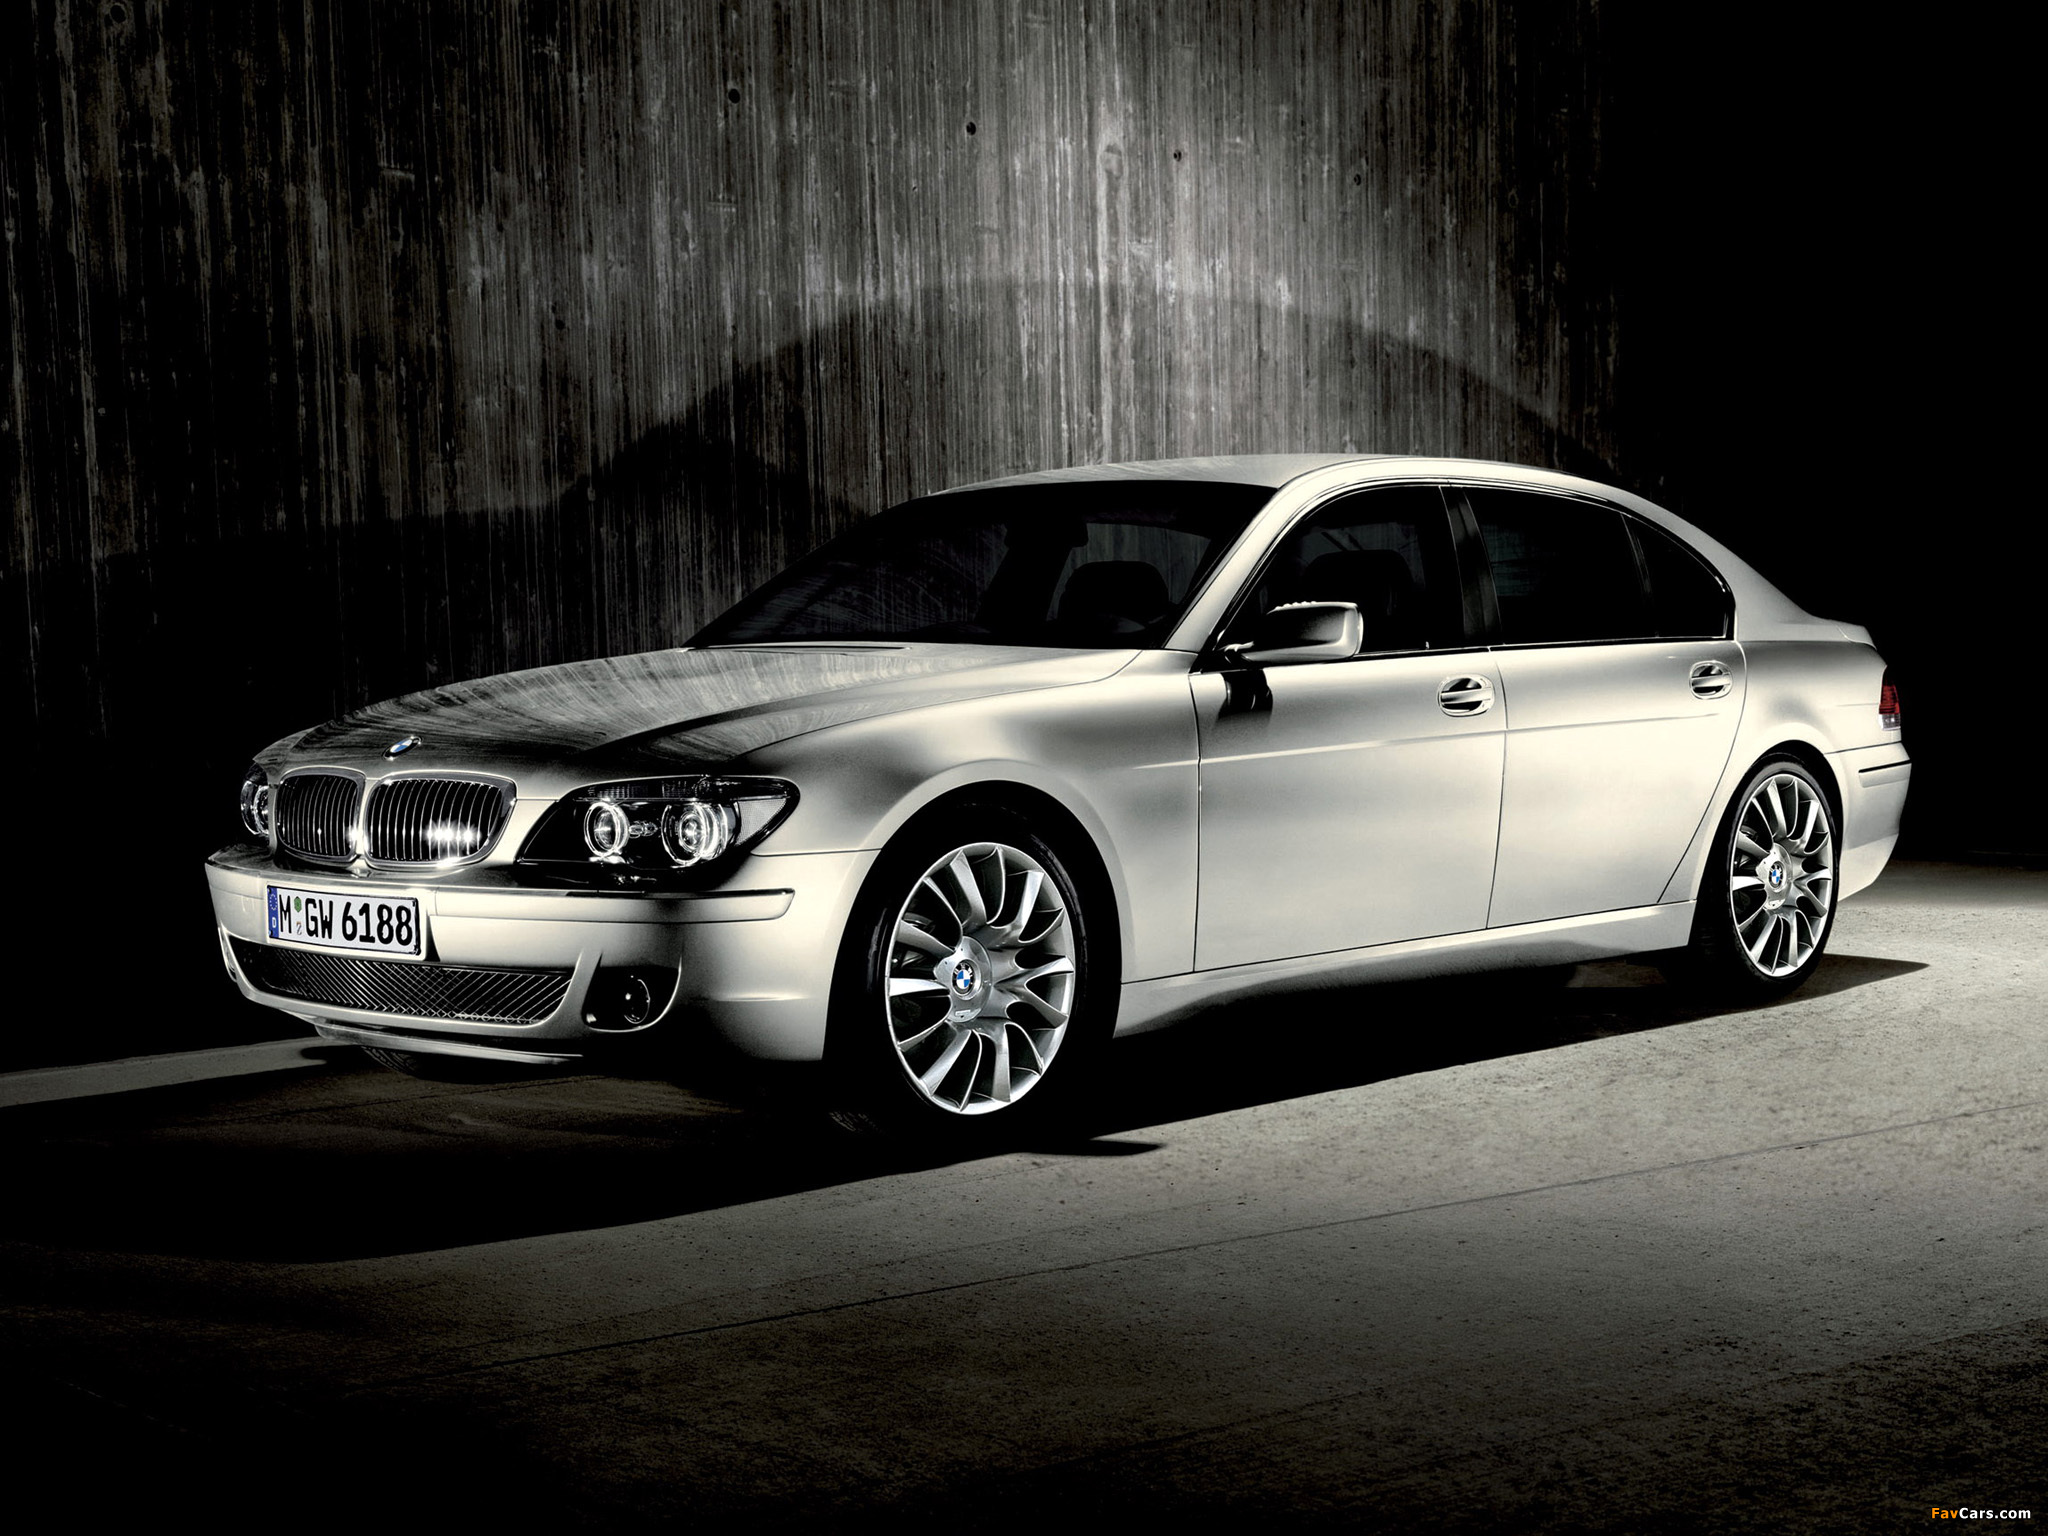 Bmw 7 Series 30th Anniversary Limited Edition E66 2007 Images 2048x1536